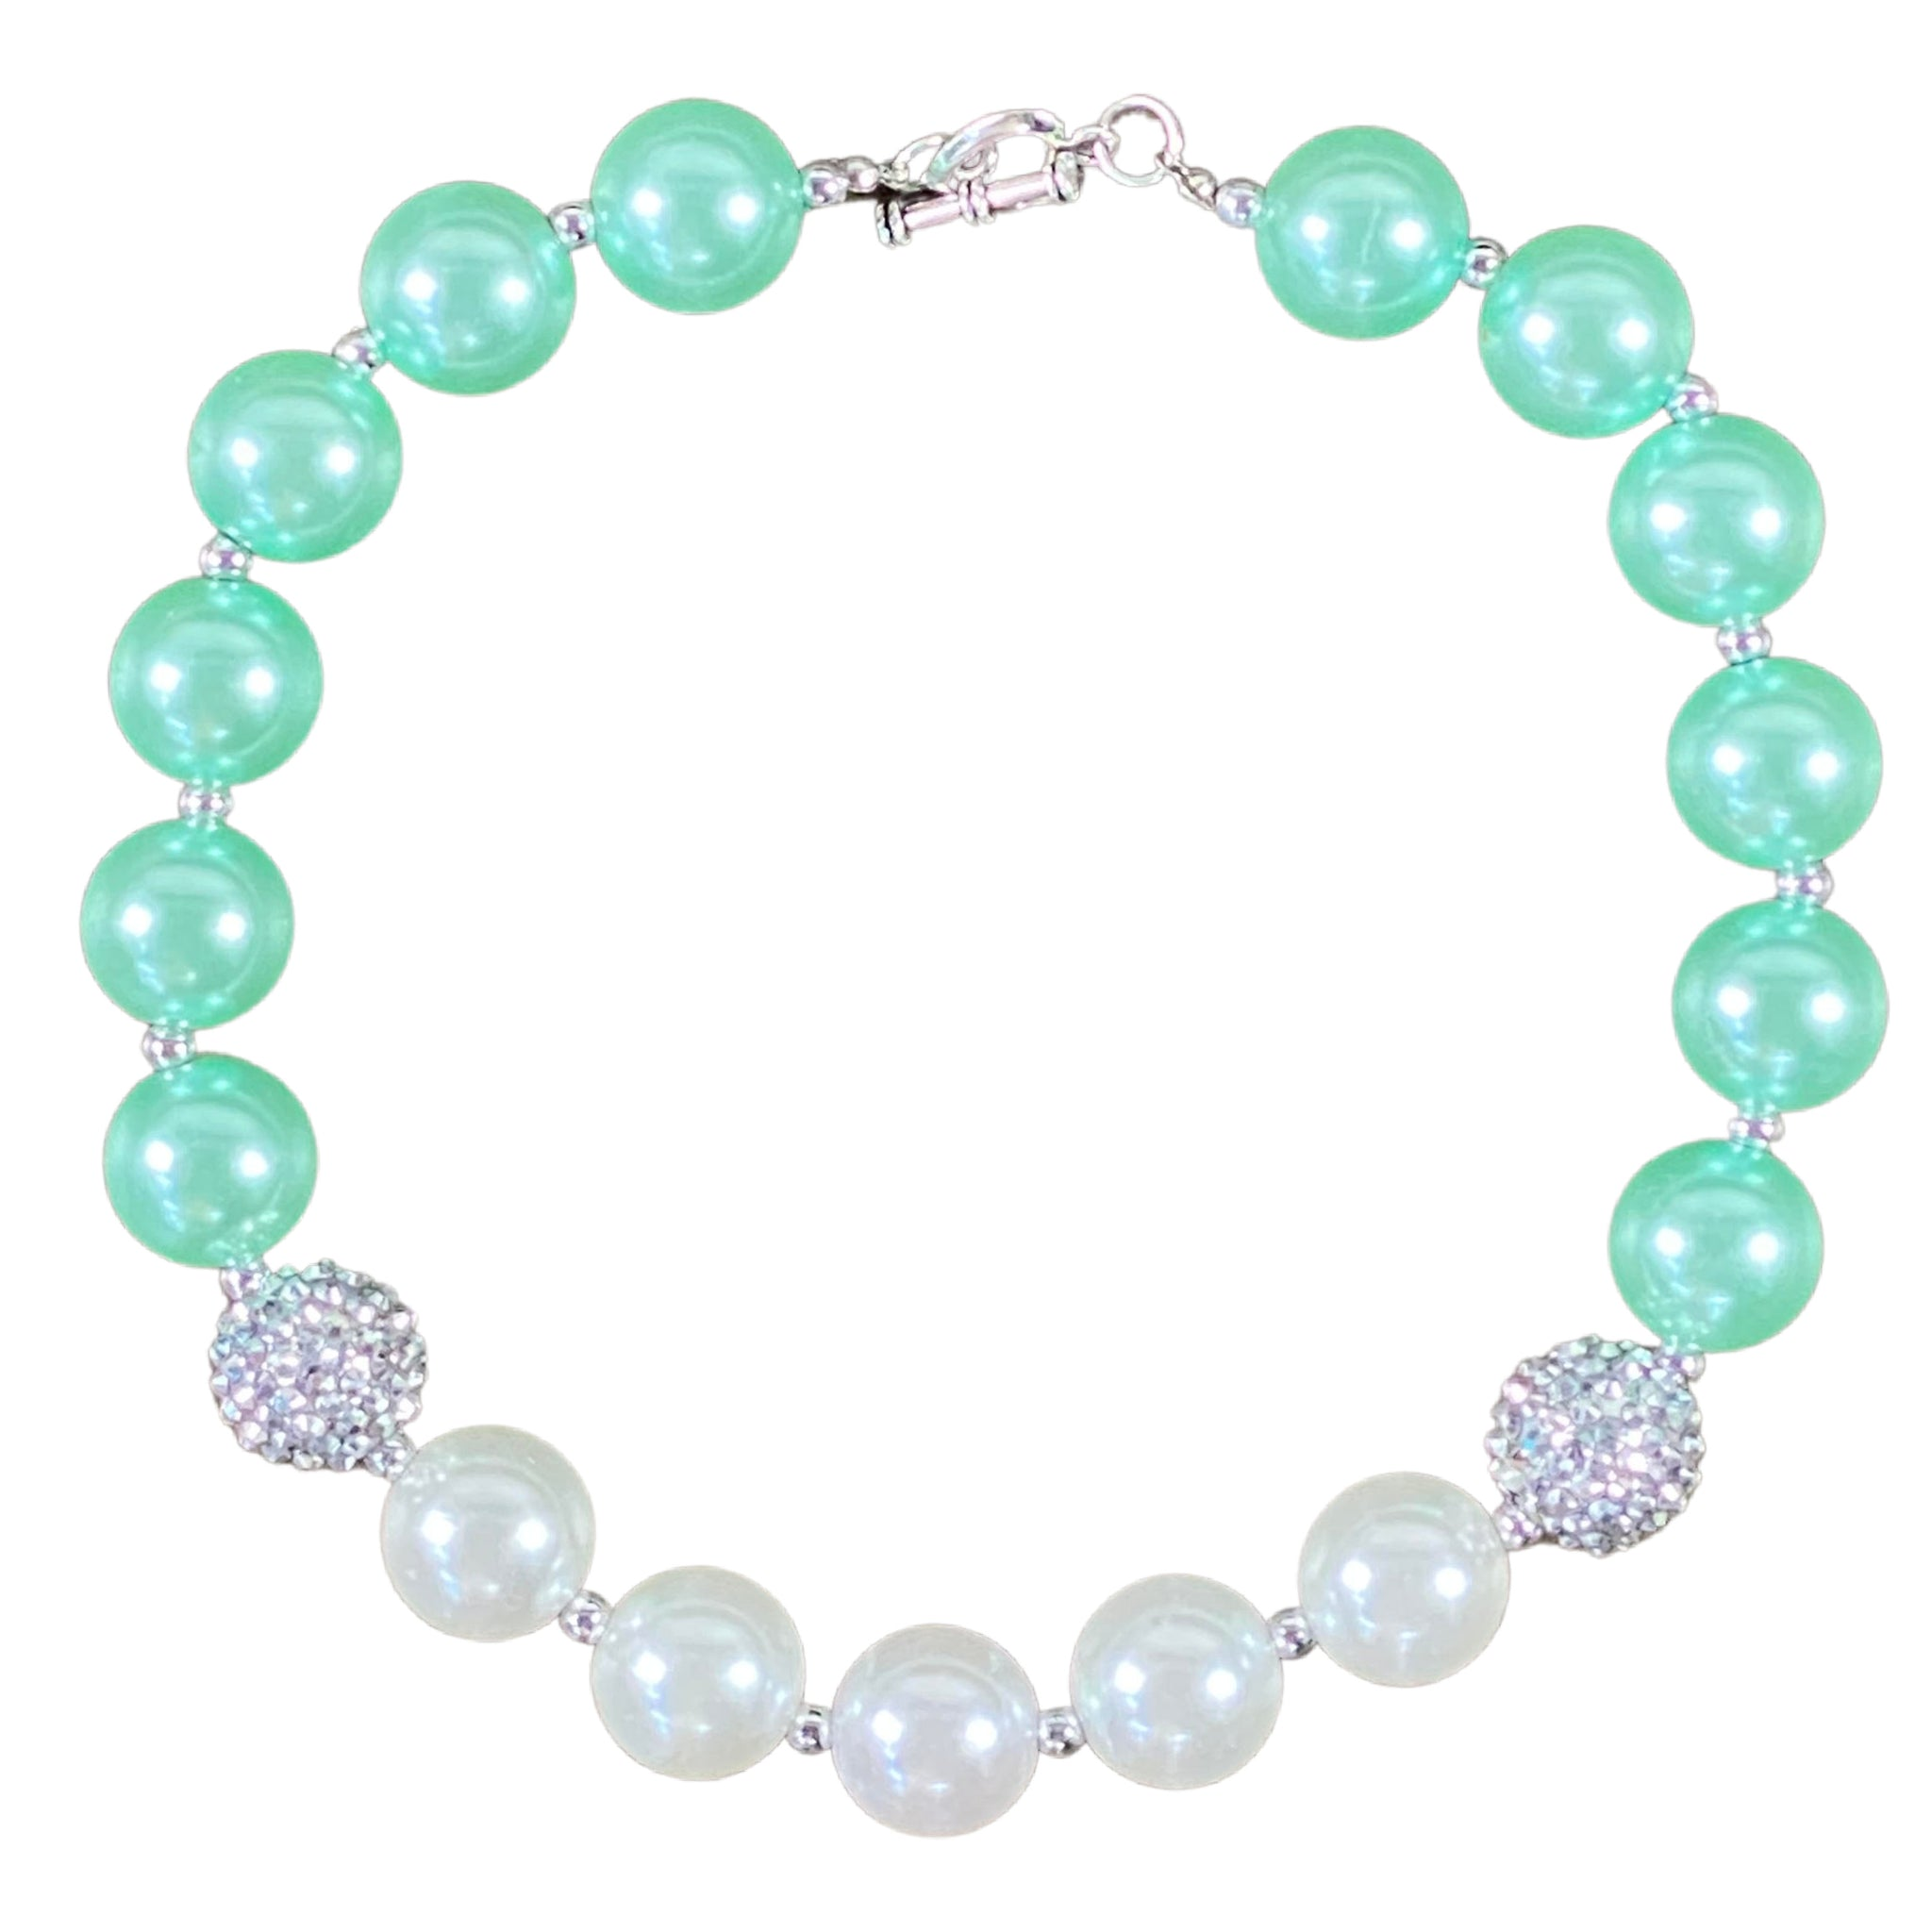 Sparkly Silver, Mint & White Bubblegum Necklace